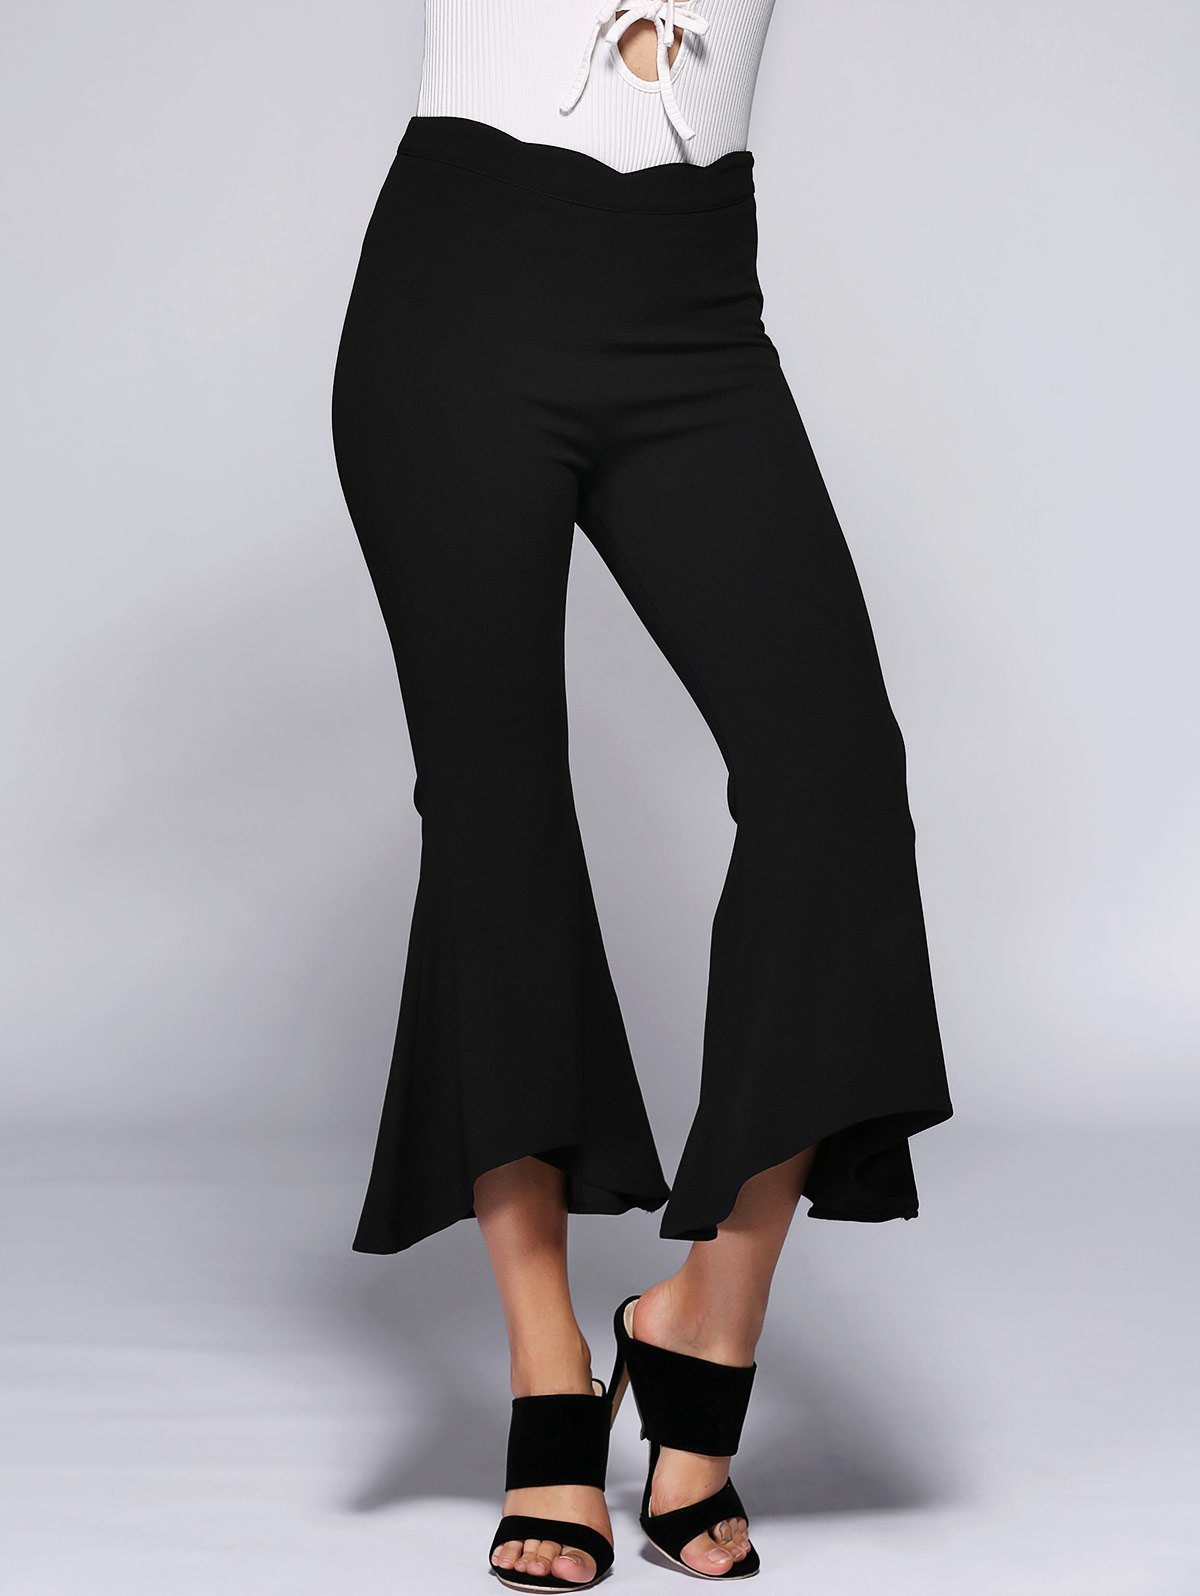 High Waist Slimming Bell Bottom Stretchy Pants - BLACK S